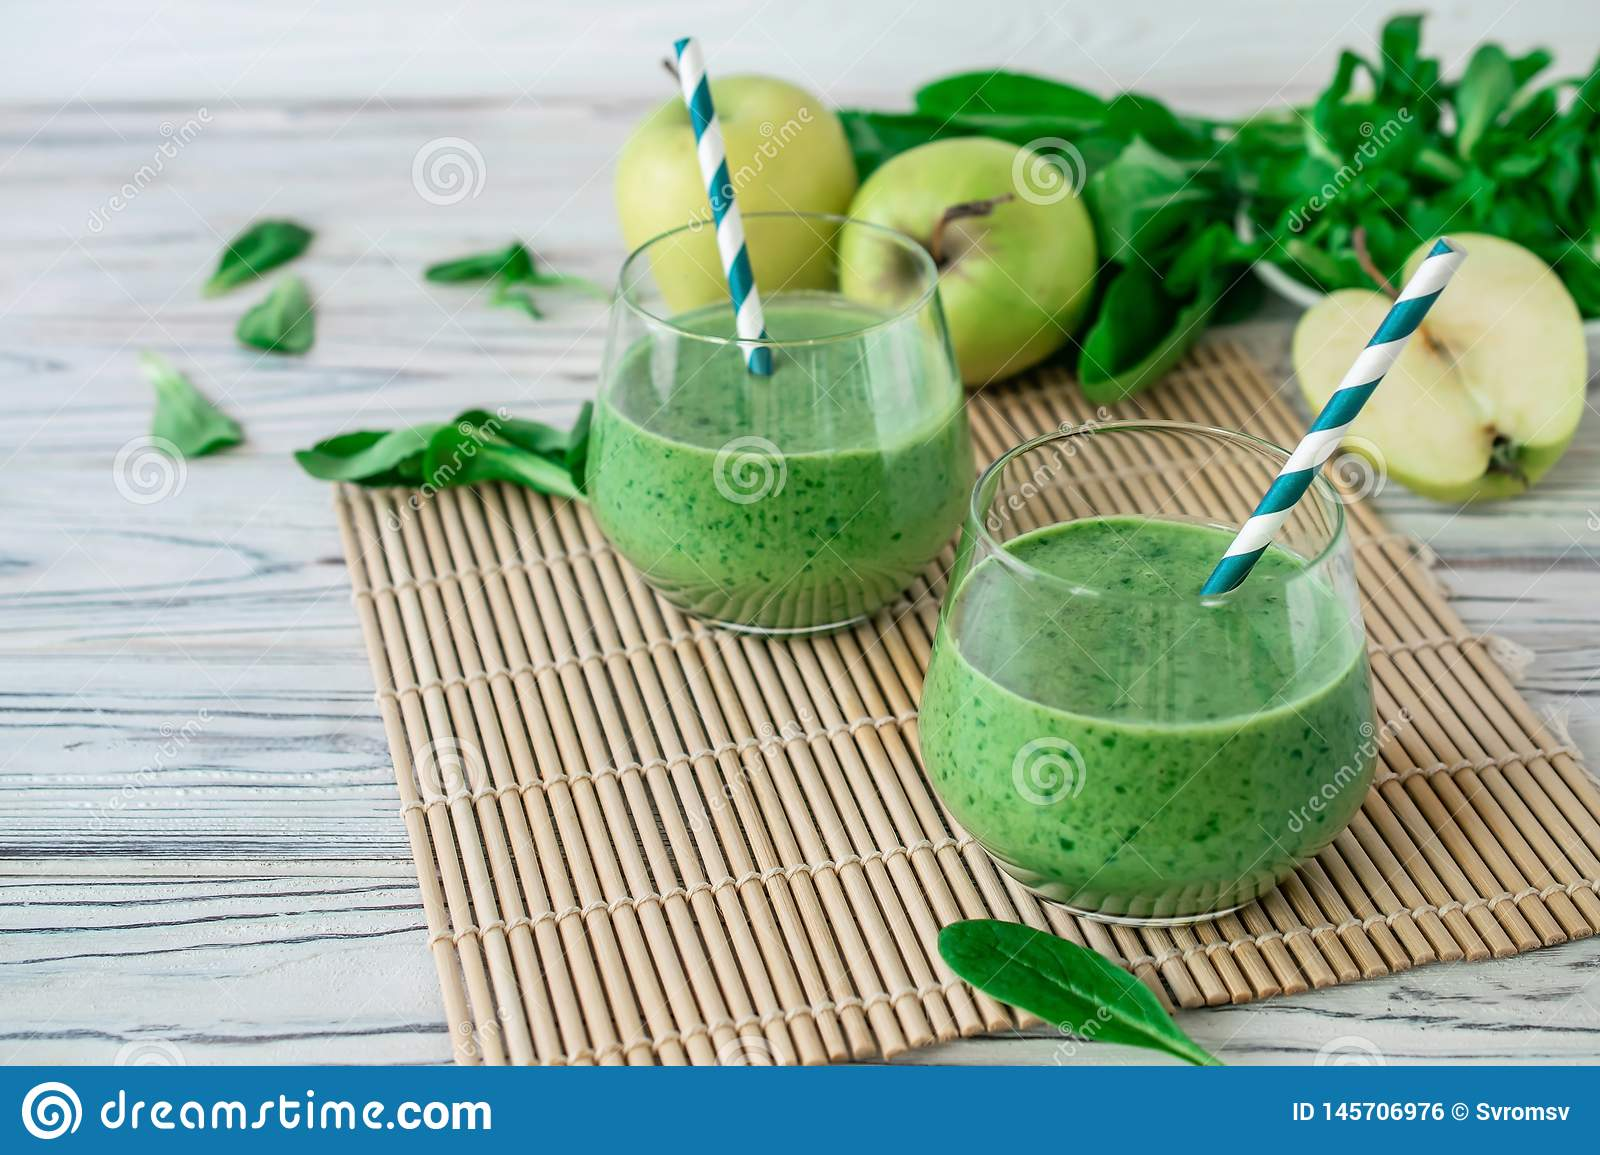 Detox fresh green smoothie with spinach, apple, mache lamb lettuce